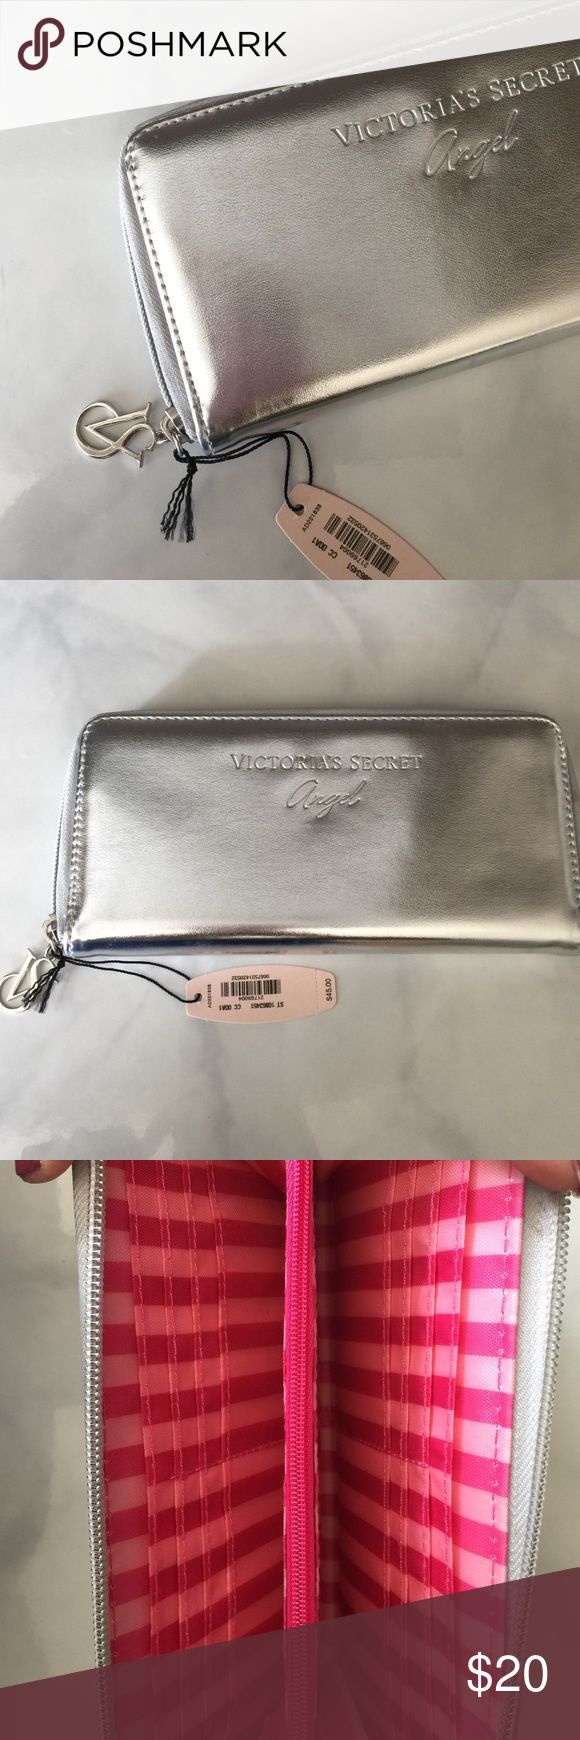 Victoria Secret Silver Clutch Bag with Card Holder Brand New Never Used with tags Victoria's Secret Bags Clutches & Wristlets